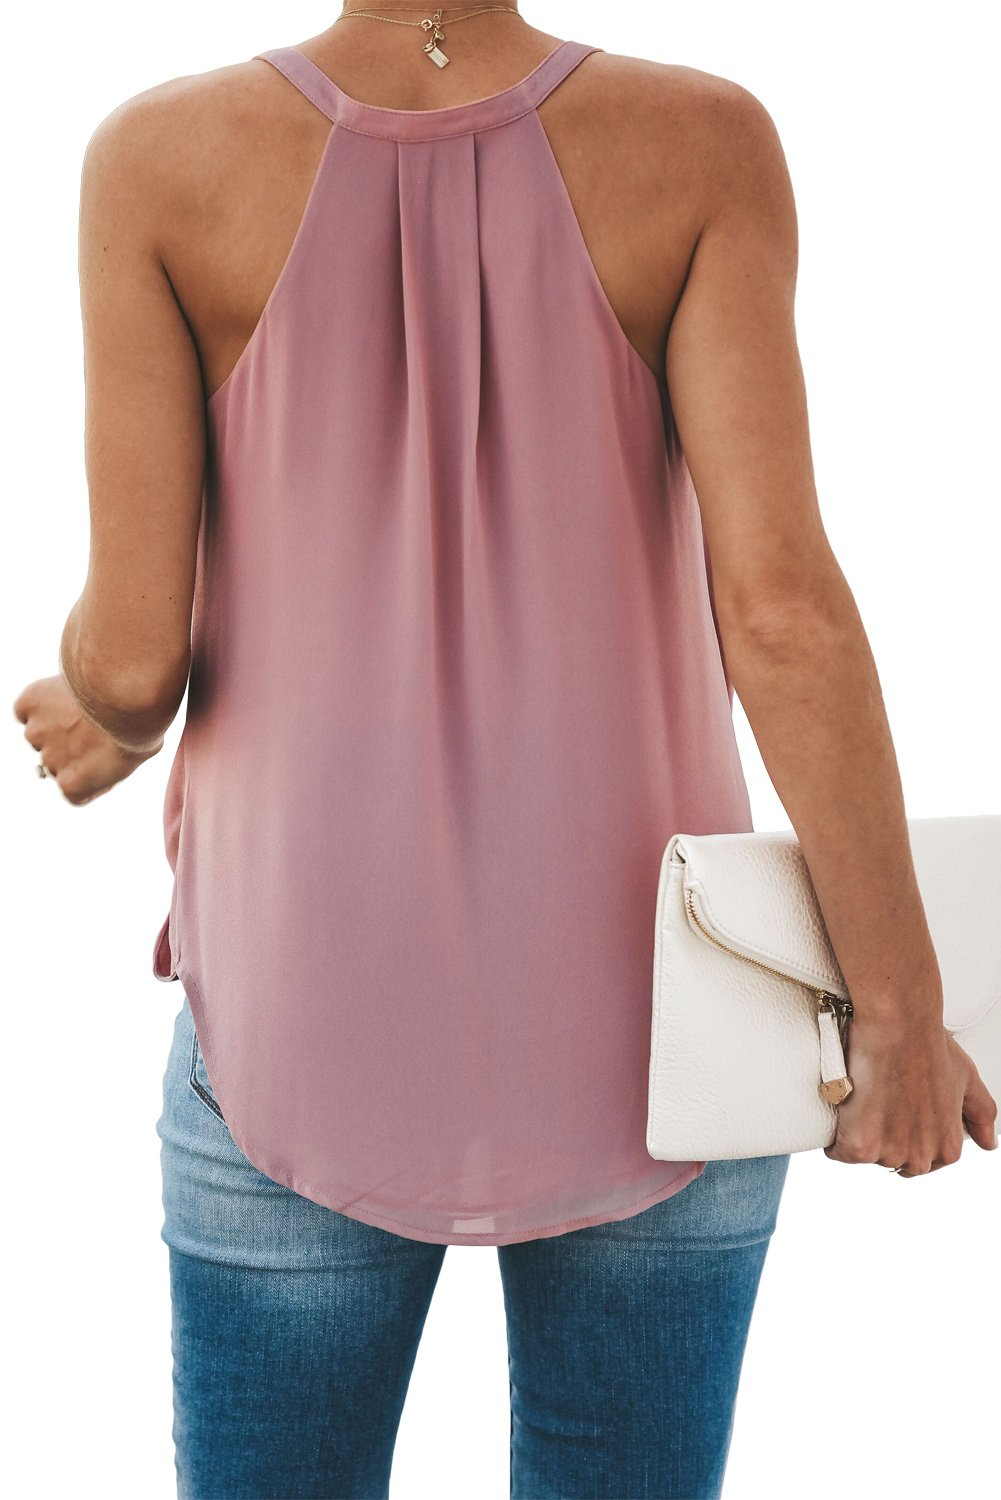 Pink Slip In Wrap Front Summer Tank Top-Tops, Tank Tops-Azura Exchange